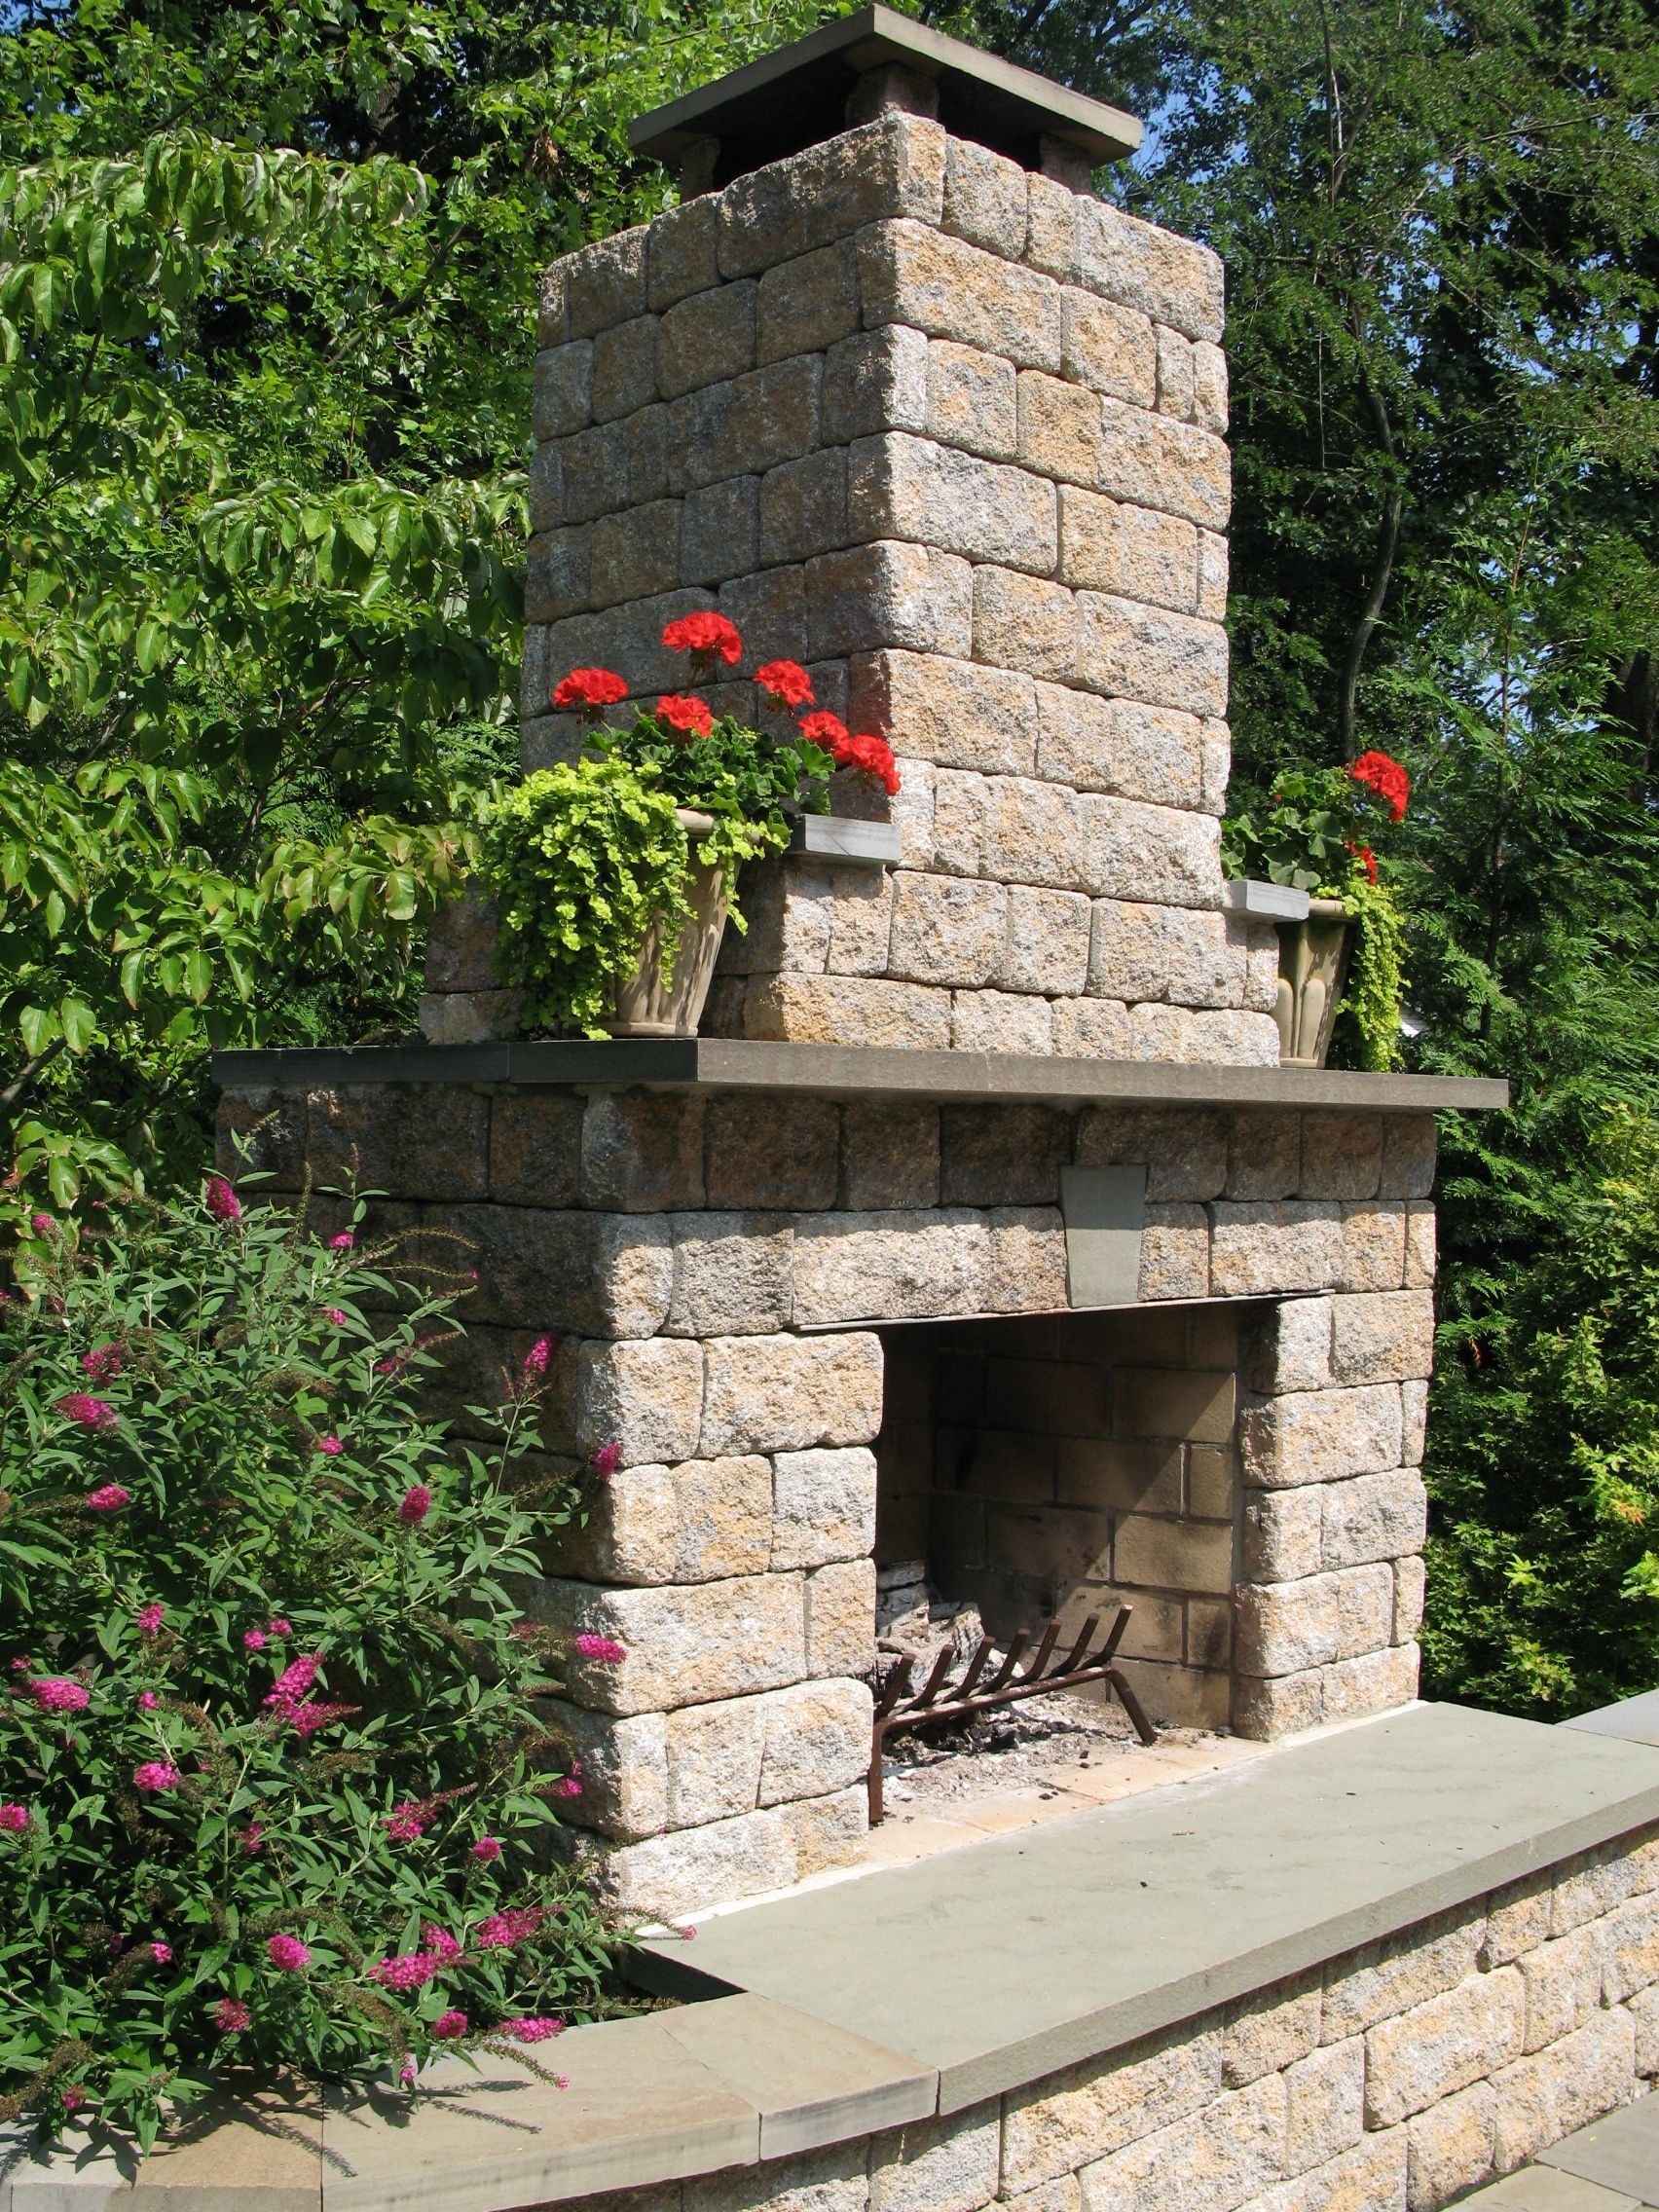 Outdoor Fireplace using Allan Block | Backyard fireplace ... on Building Outdoor Fireplace With Cinder Block id=93108